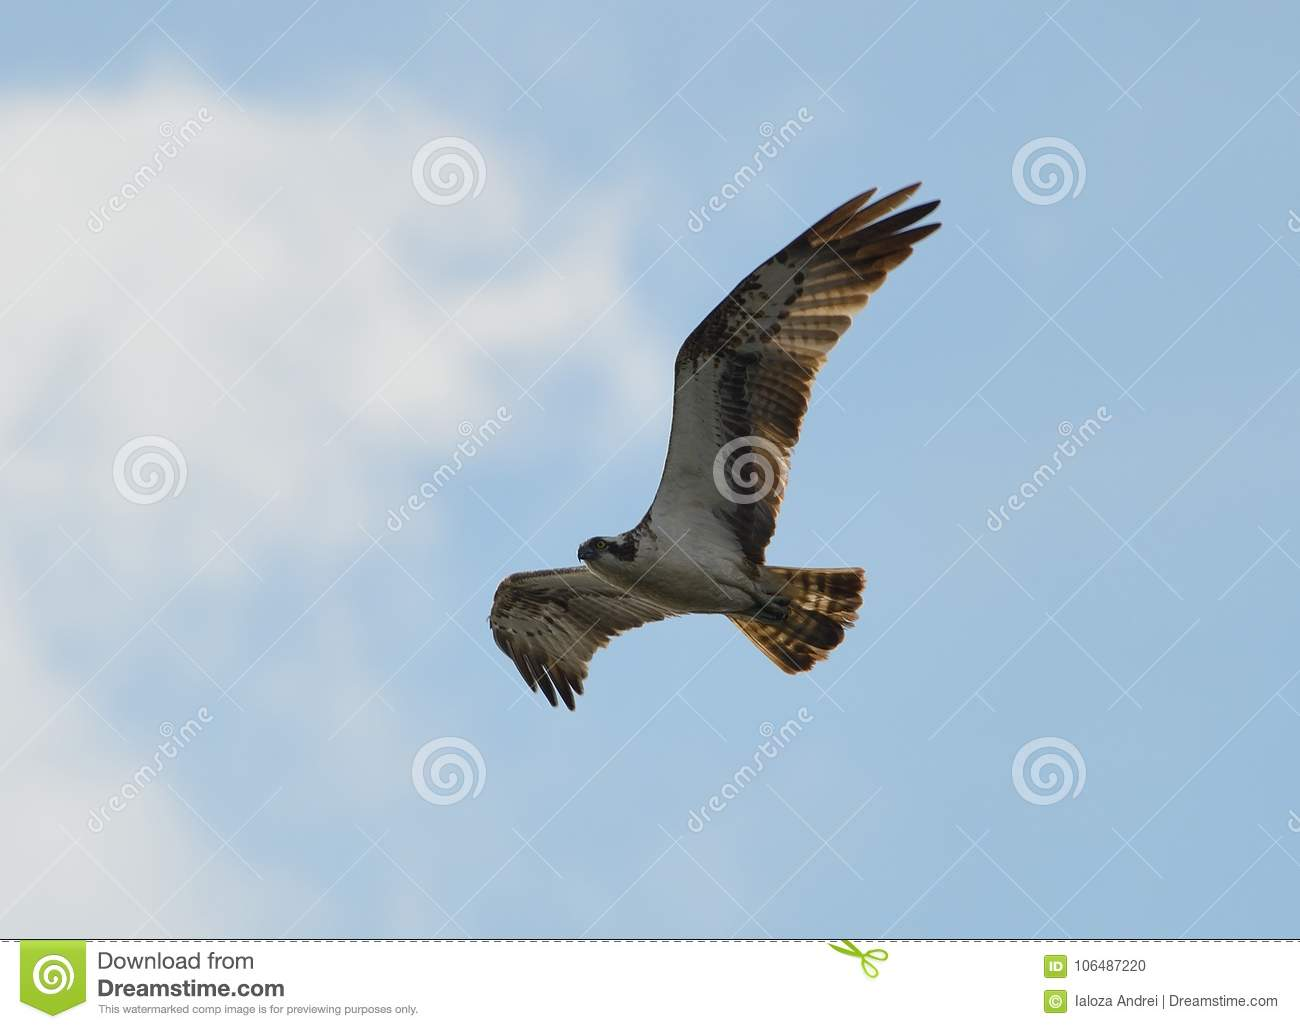 The feathered predator of the osprey in search of prey.